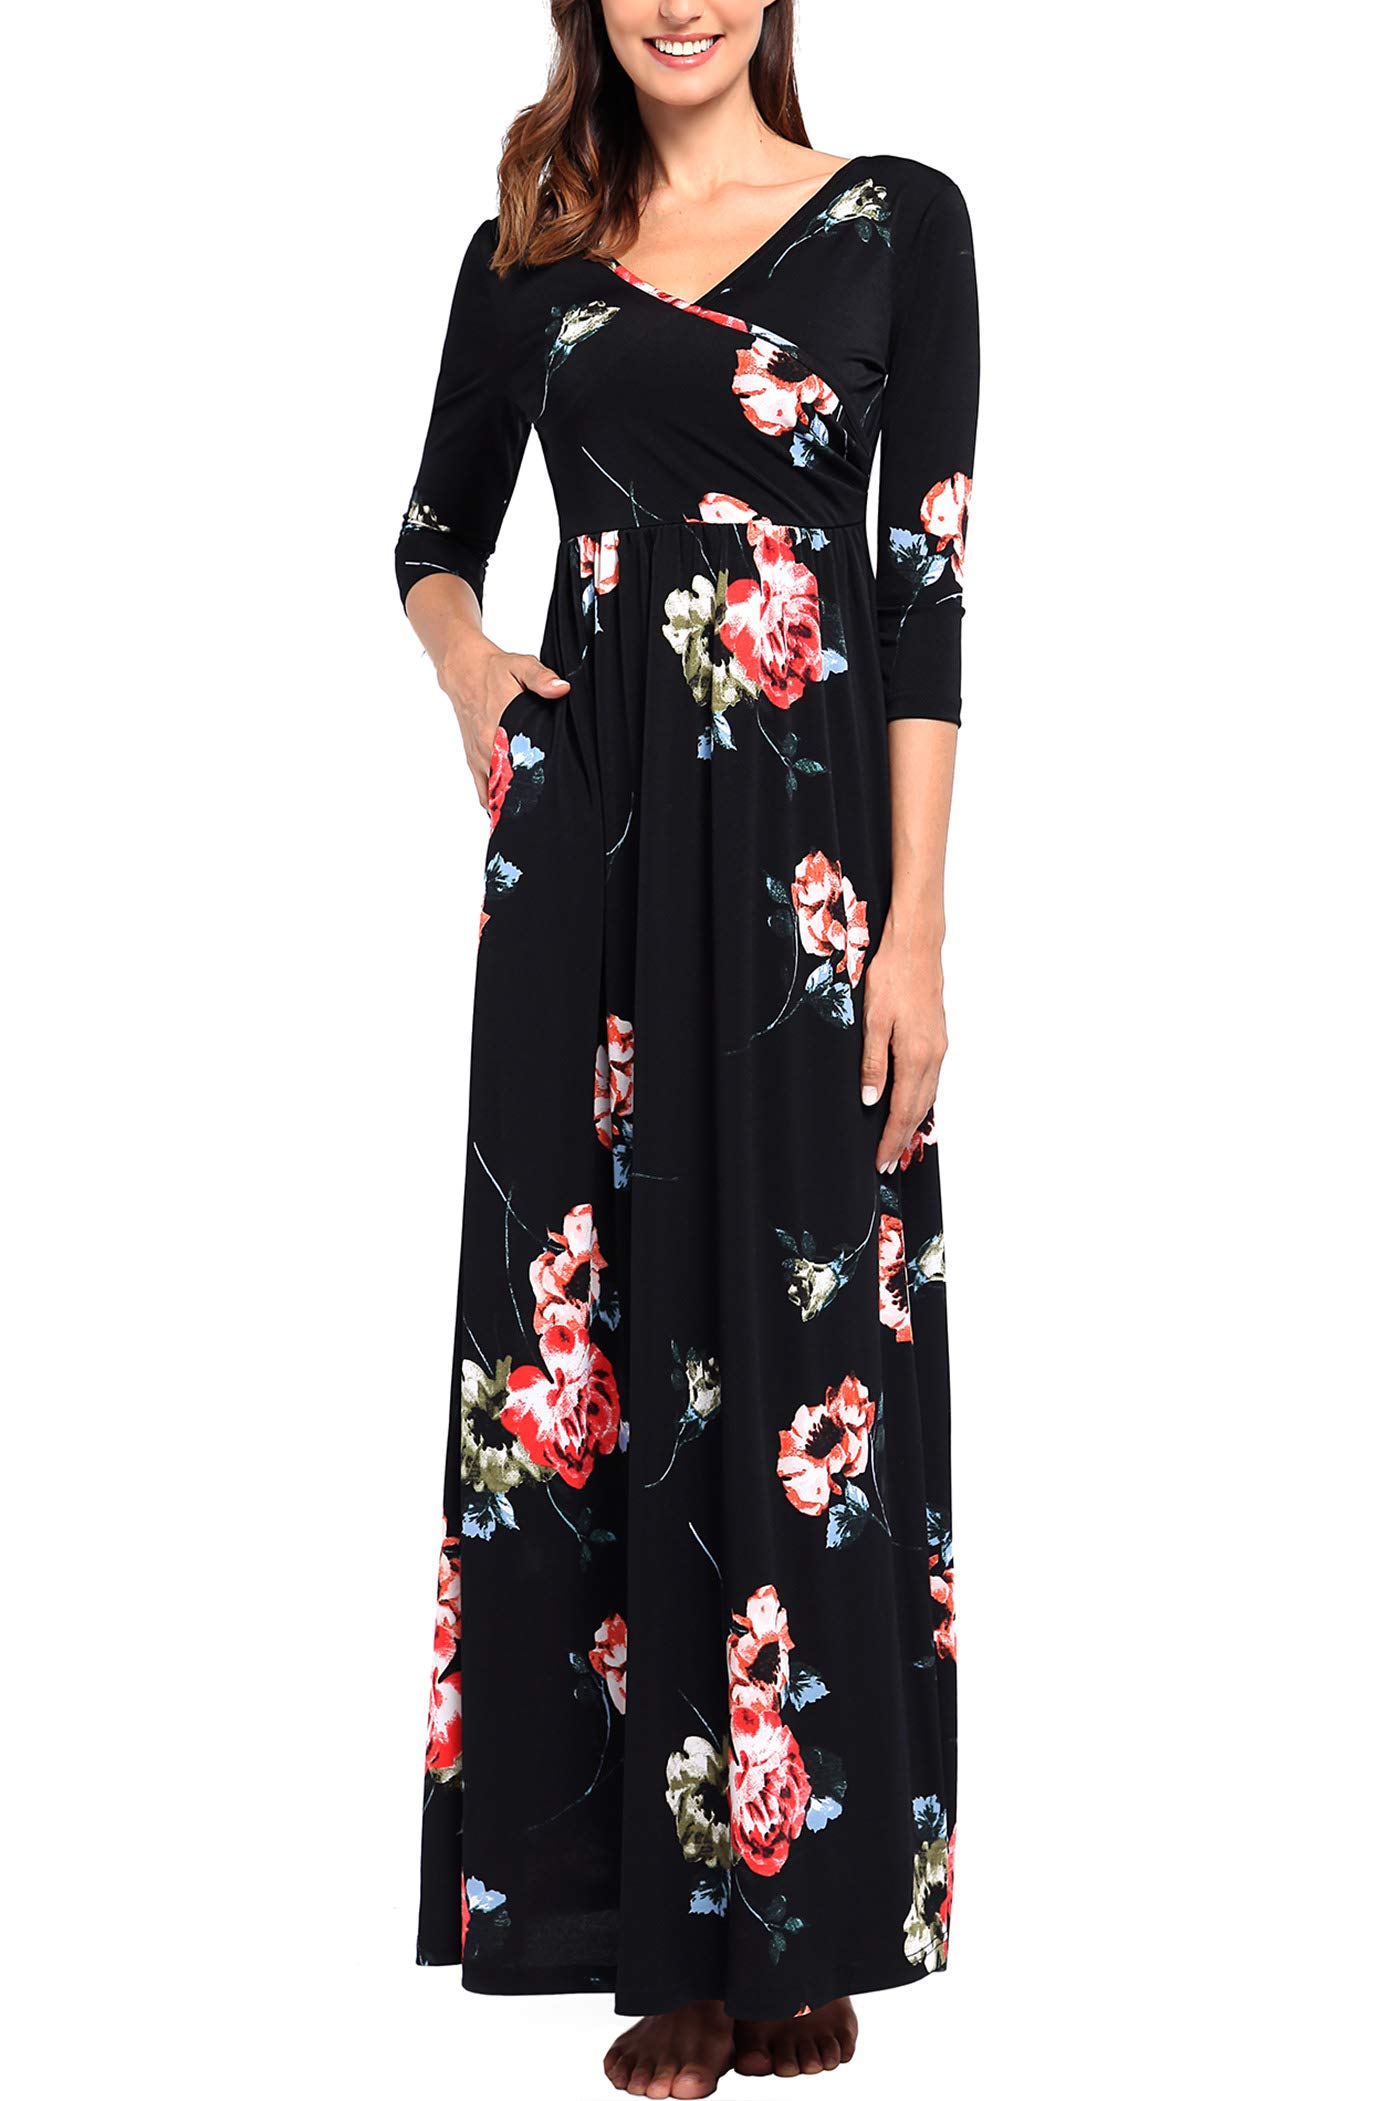 Comila 3/4 Sleeve Maxi Dress, Black Floral Maxi Dress Cocktail Party Autumn Maternity Sexy V Neck Long Casual Dresses with Pockets Black Red M (US 8-10)